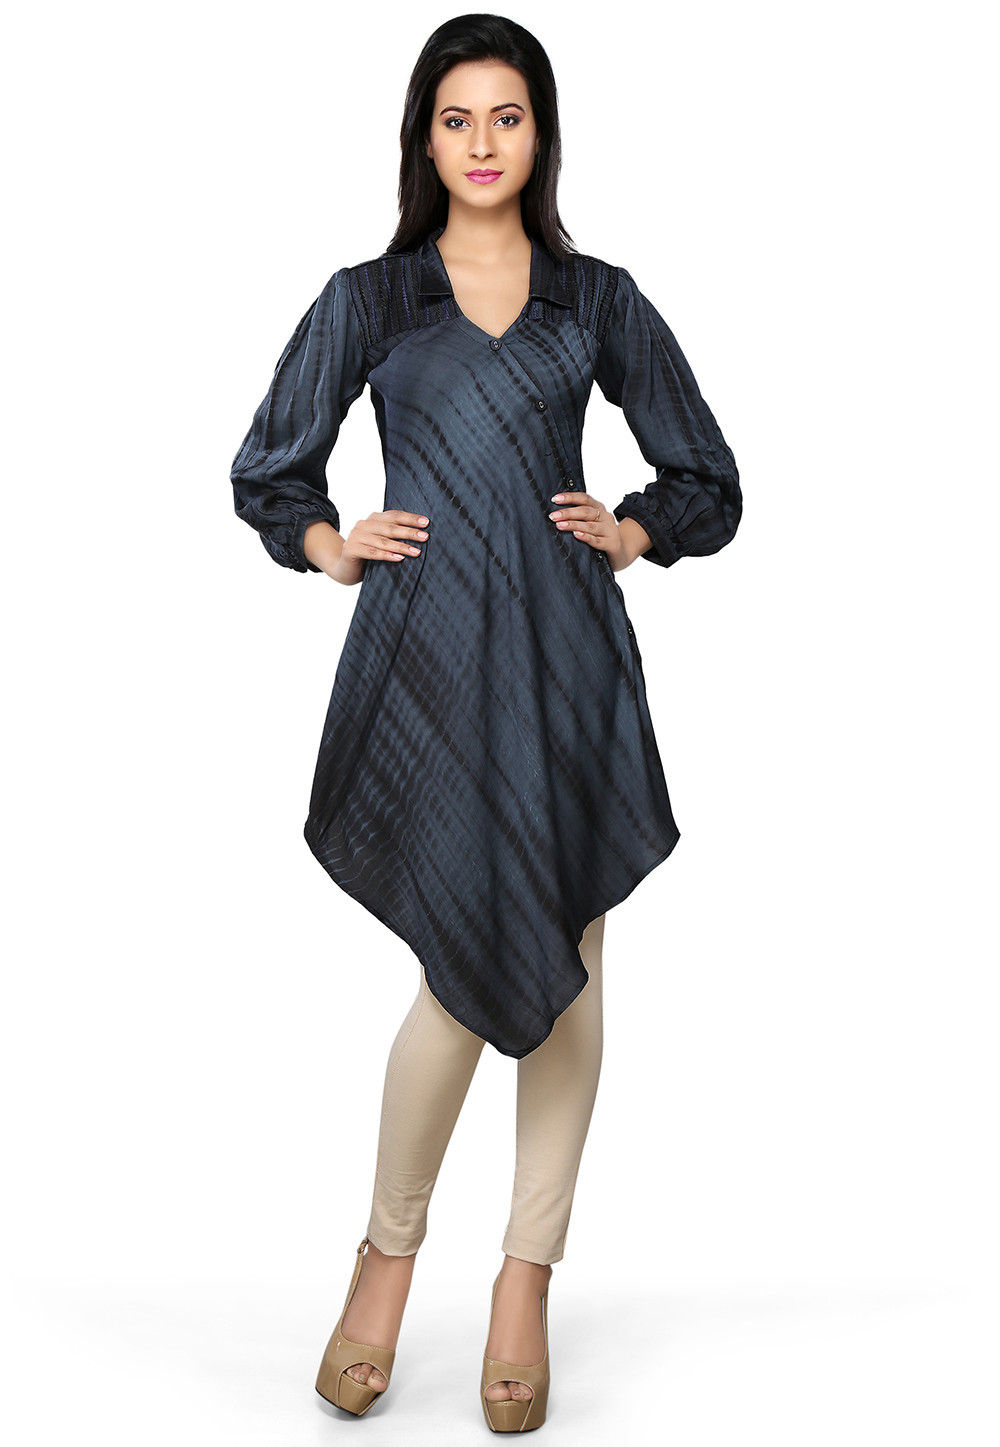 Printed Modal Silk Asymmetric Tunic in Grey and Black